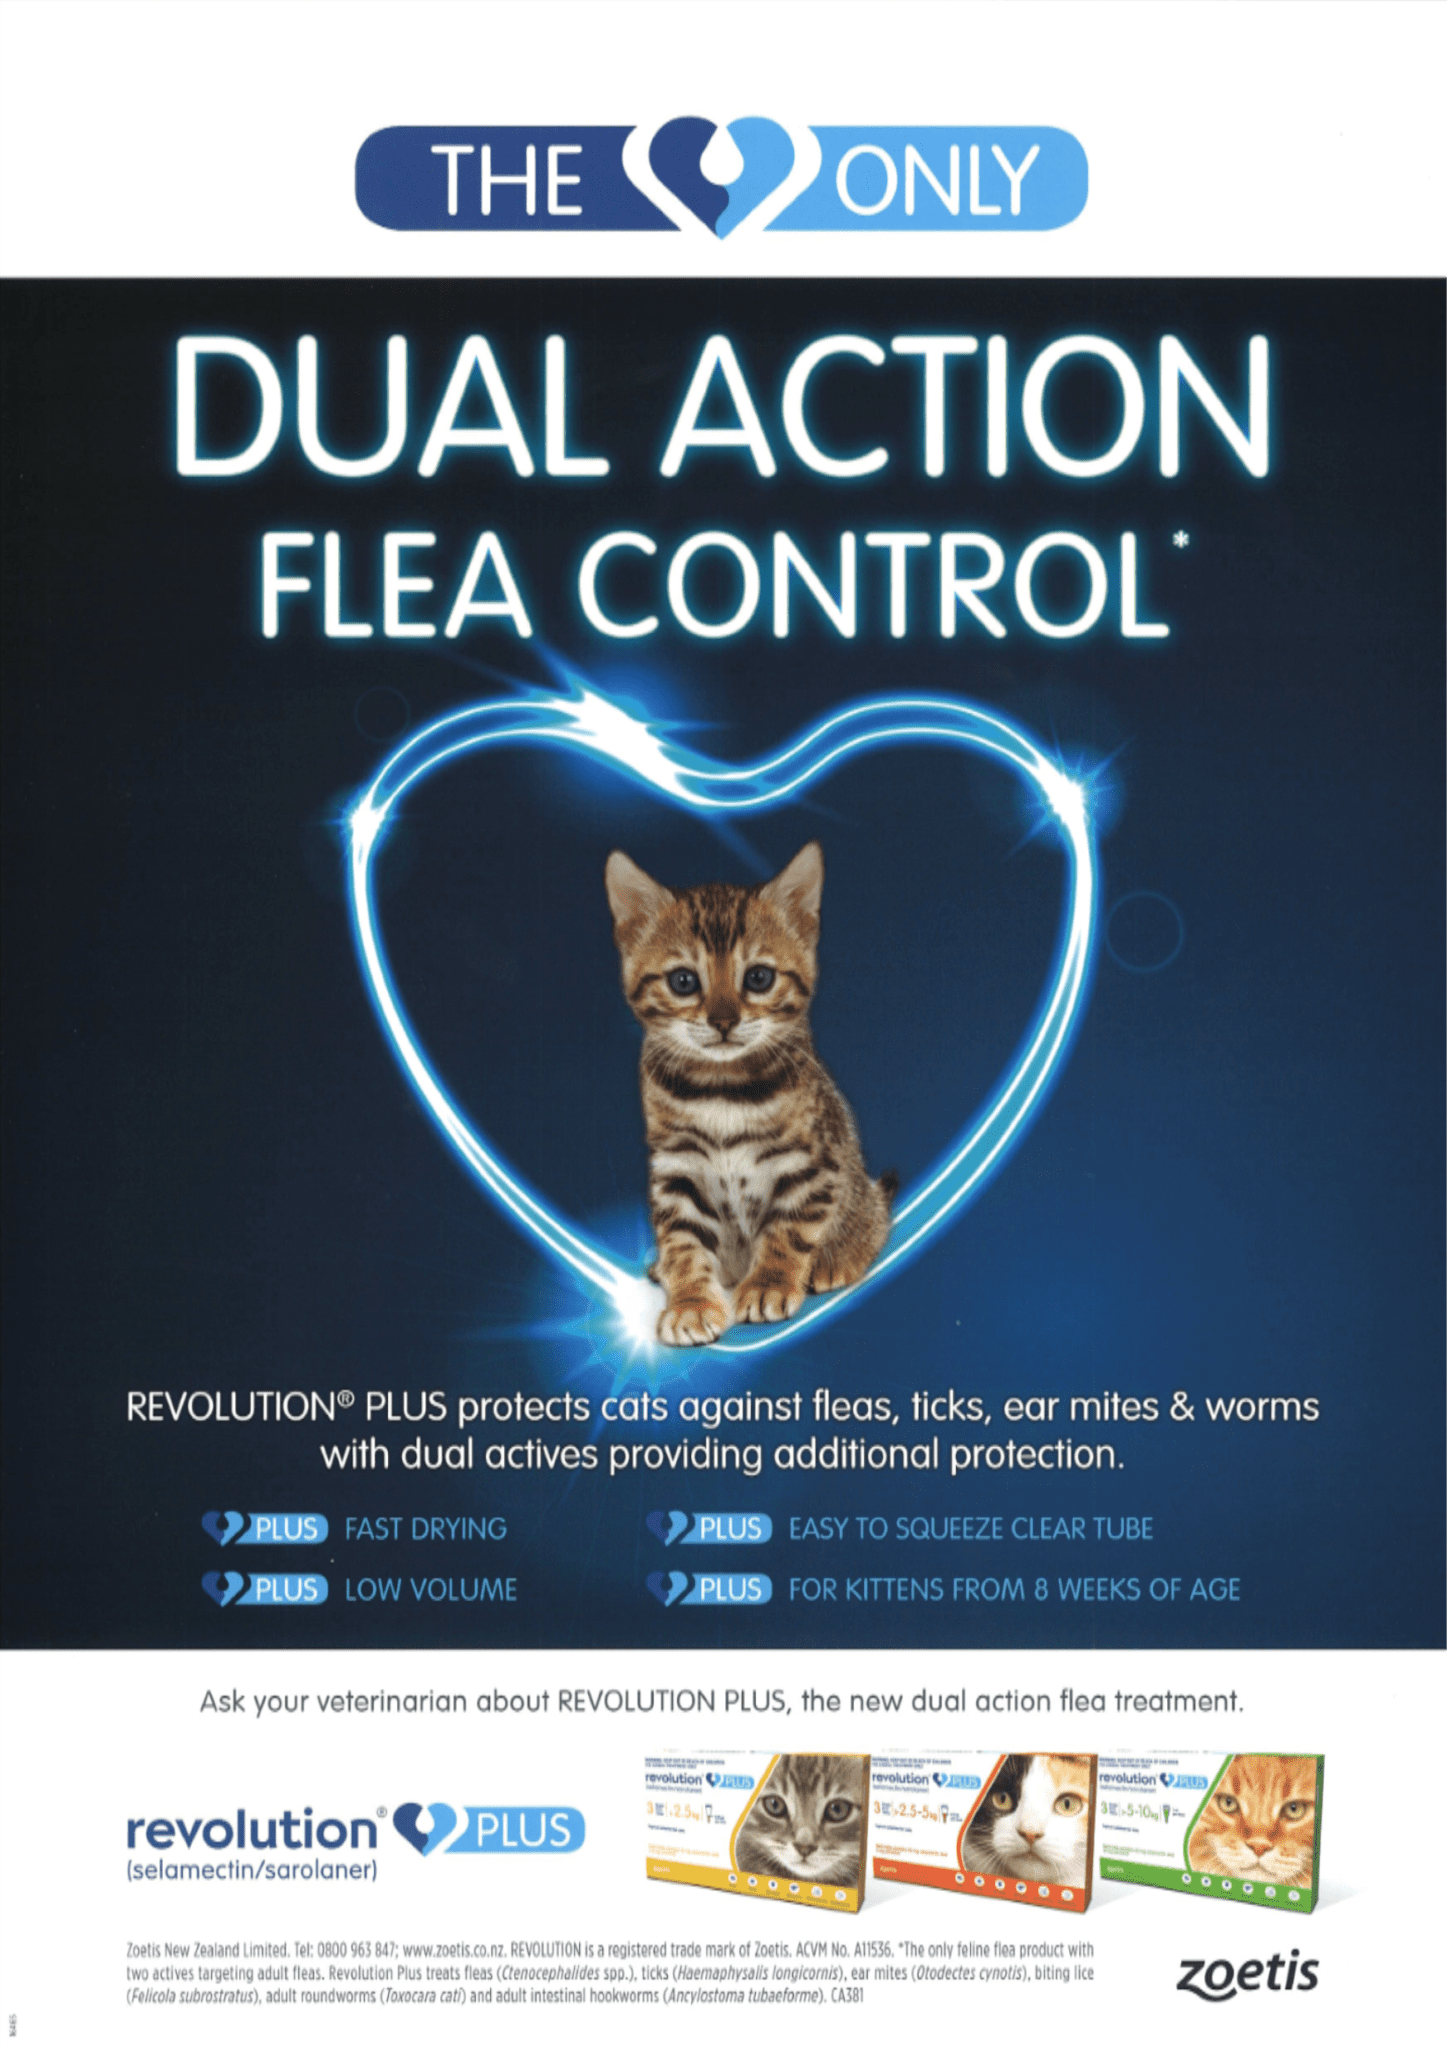 NEW PRODUCT ALERT – Revolution Plus For Cats